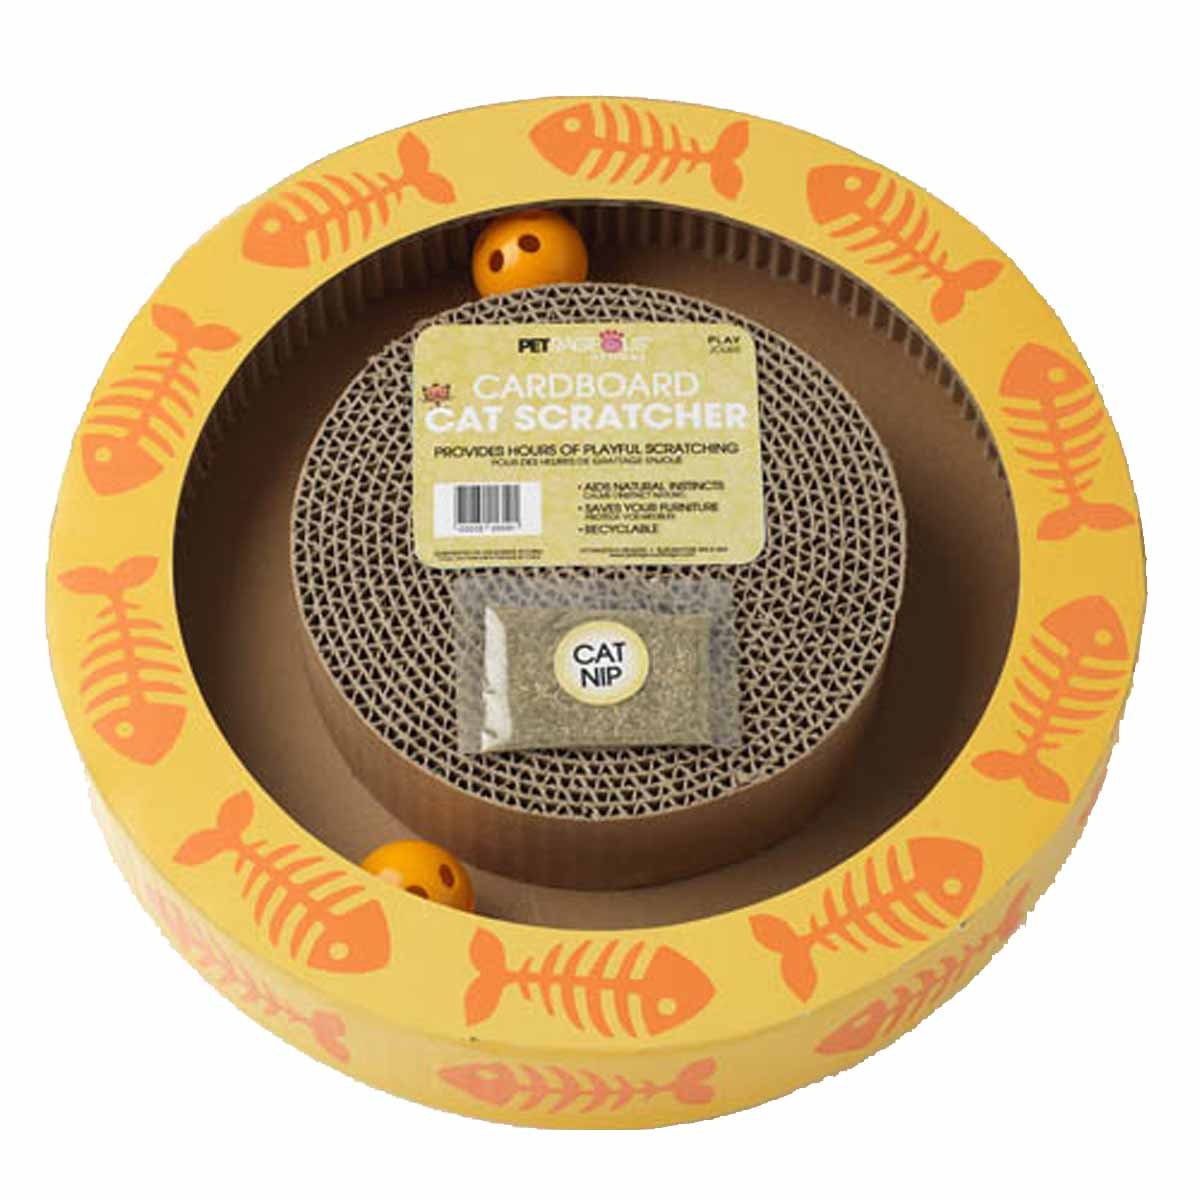 Sylvester's Interactive Cat Scratcher - Yellow